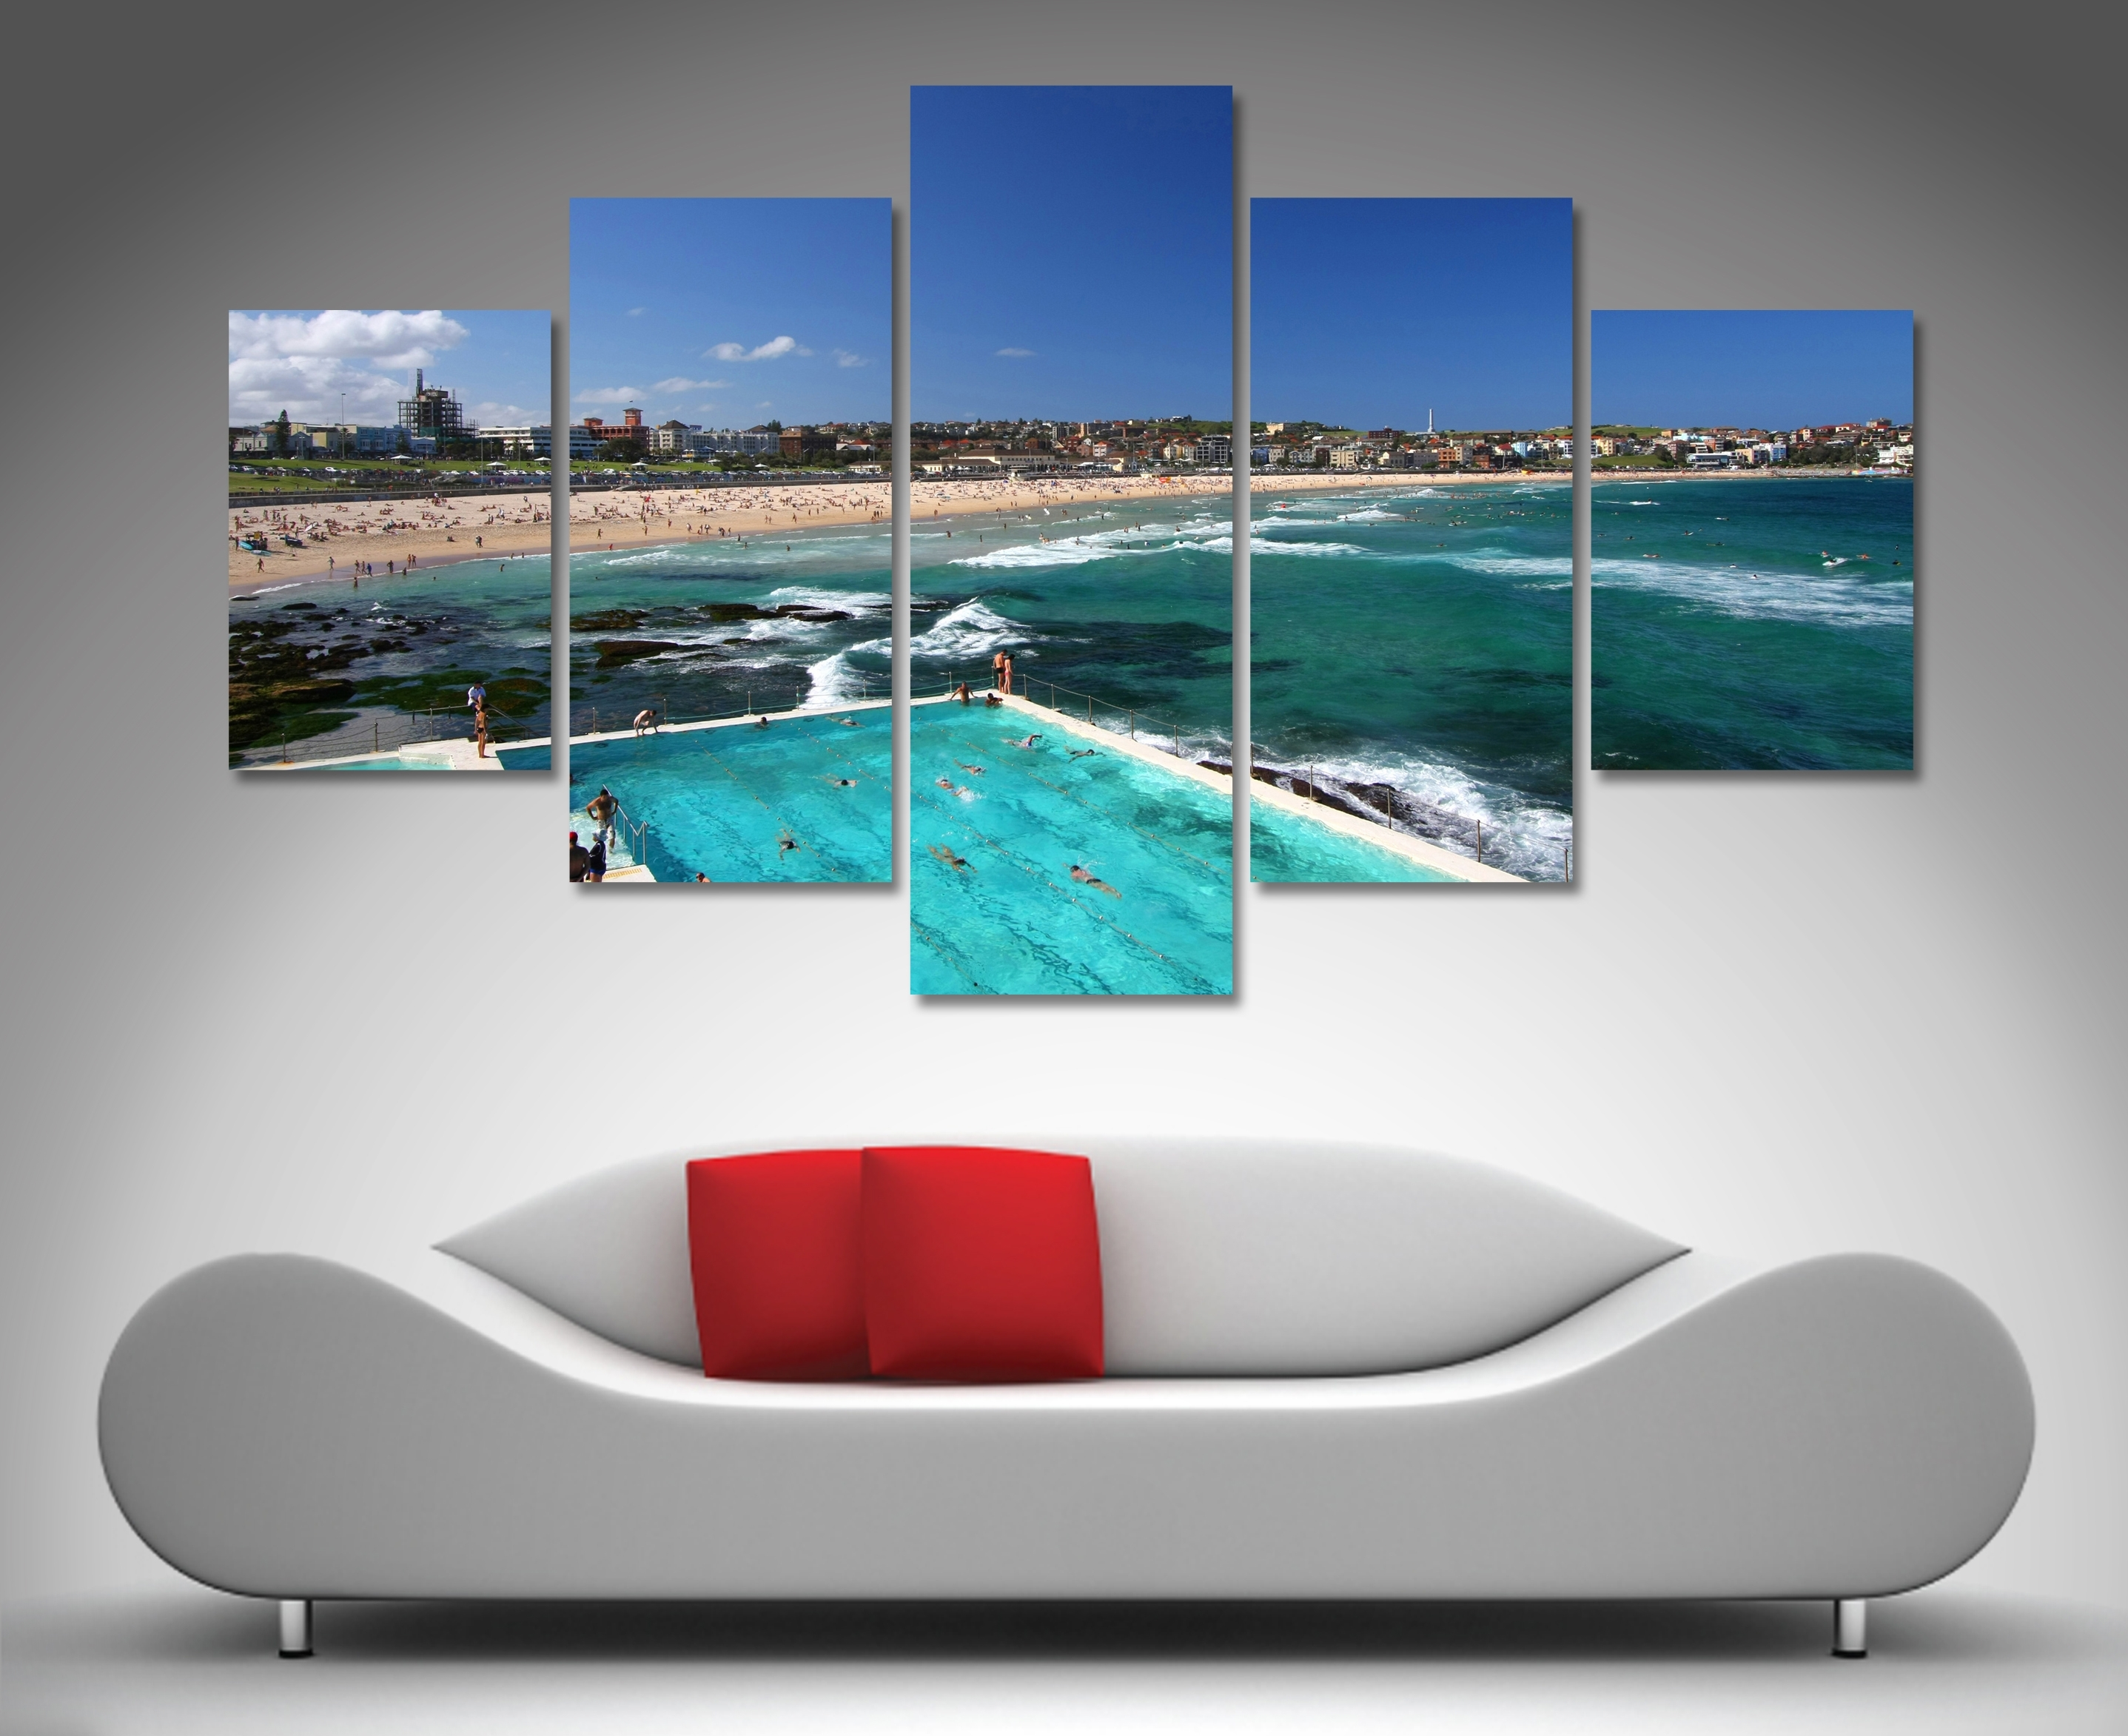 Bondi Beach 5 Panel Wall Art | Canvas Printing Australia For Most Up To Date Canvas Wall Art In Australia (View 3 of 15)